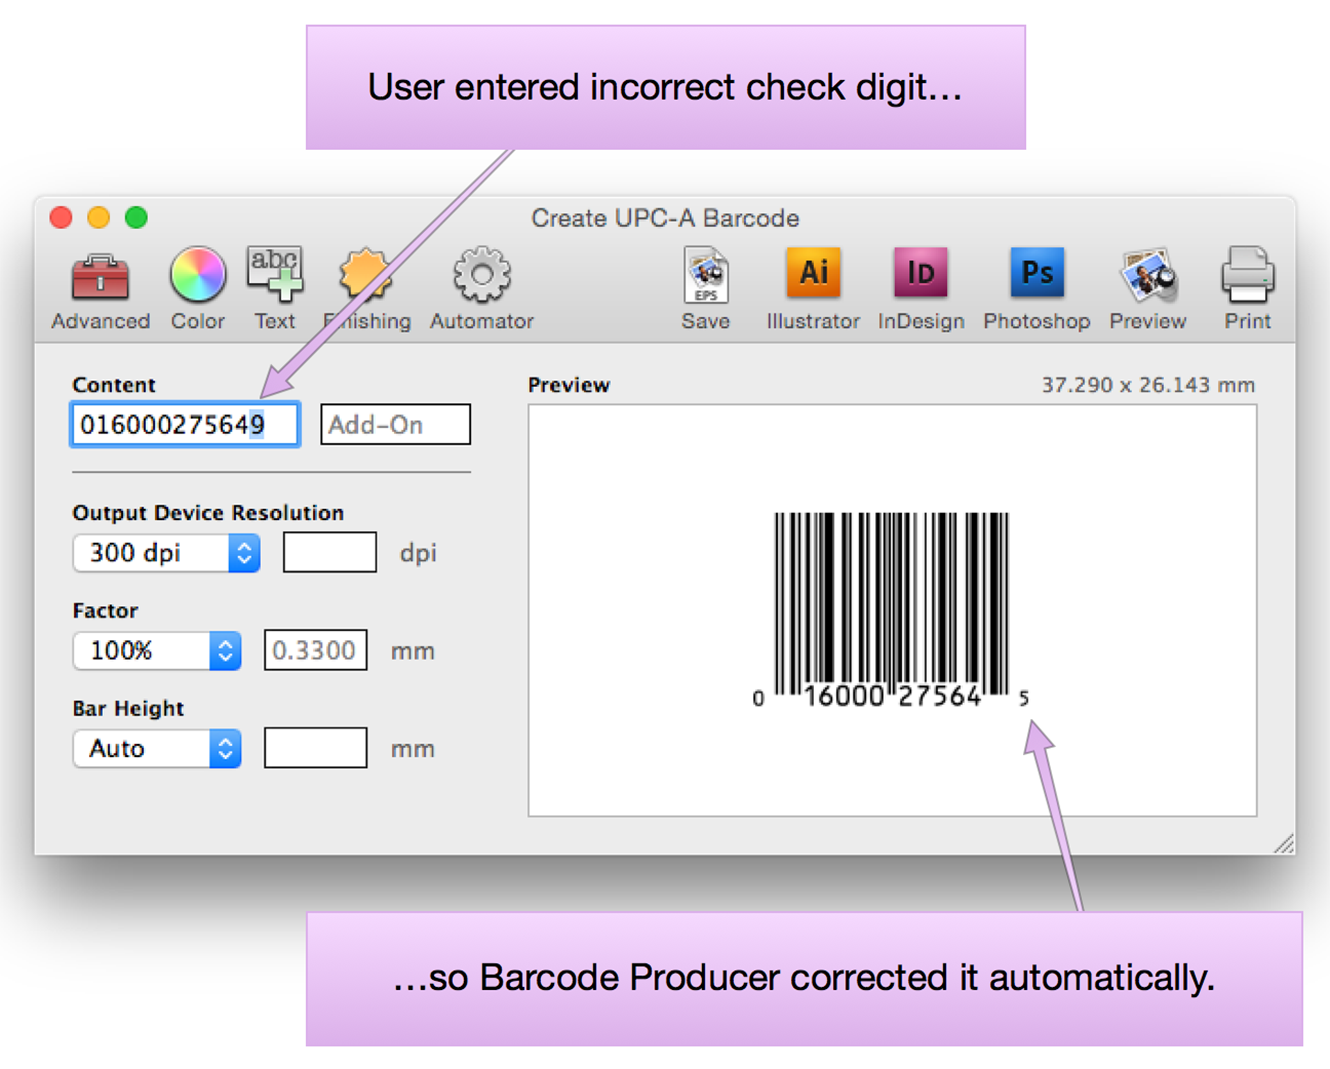 Create UPC-A Barcode screen in Barcode Producer. The user has entered the incorrect check digit, so Barcode Producer automatically corrected it.